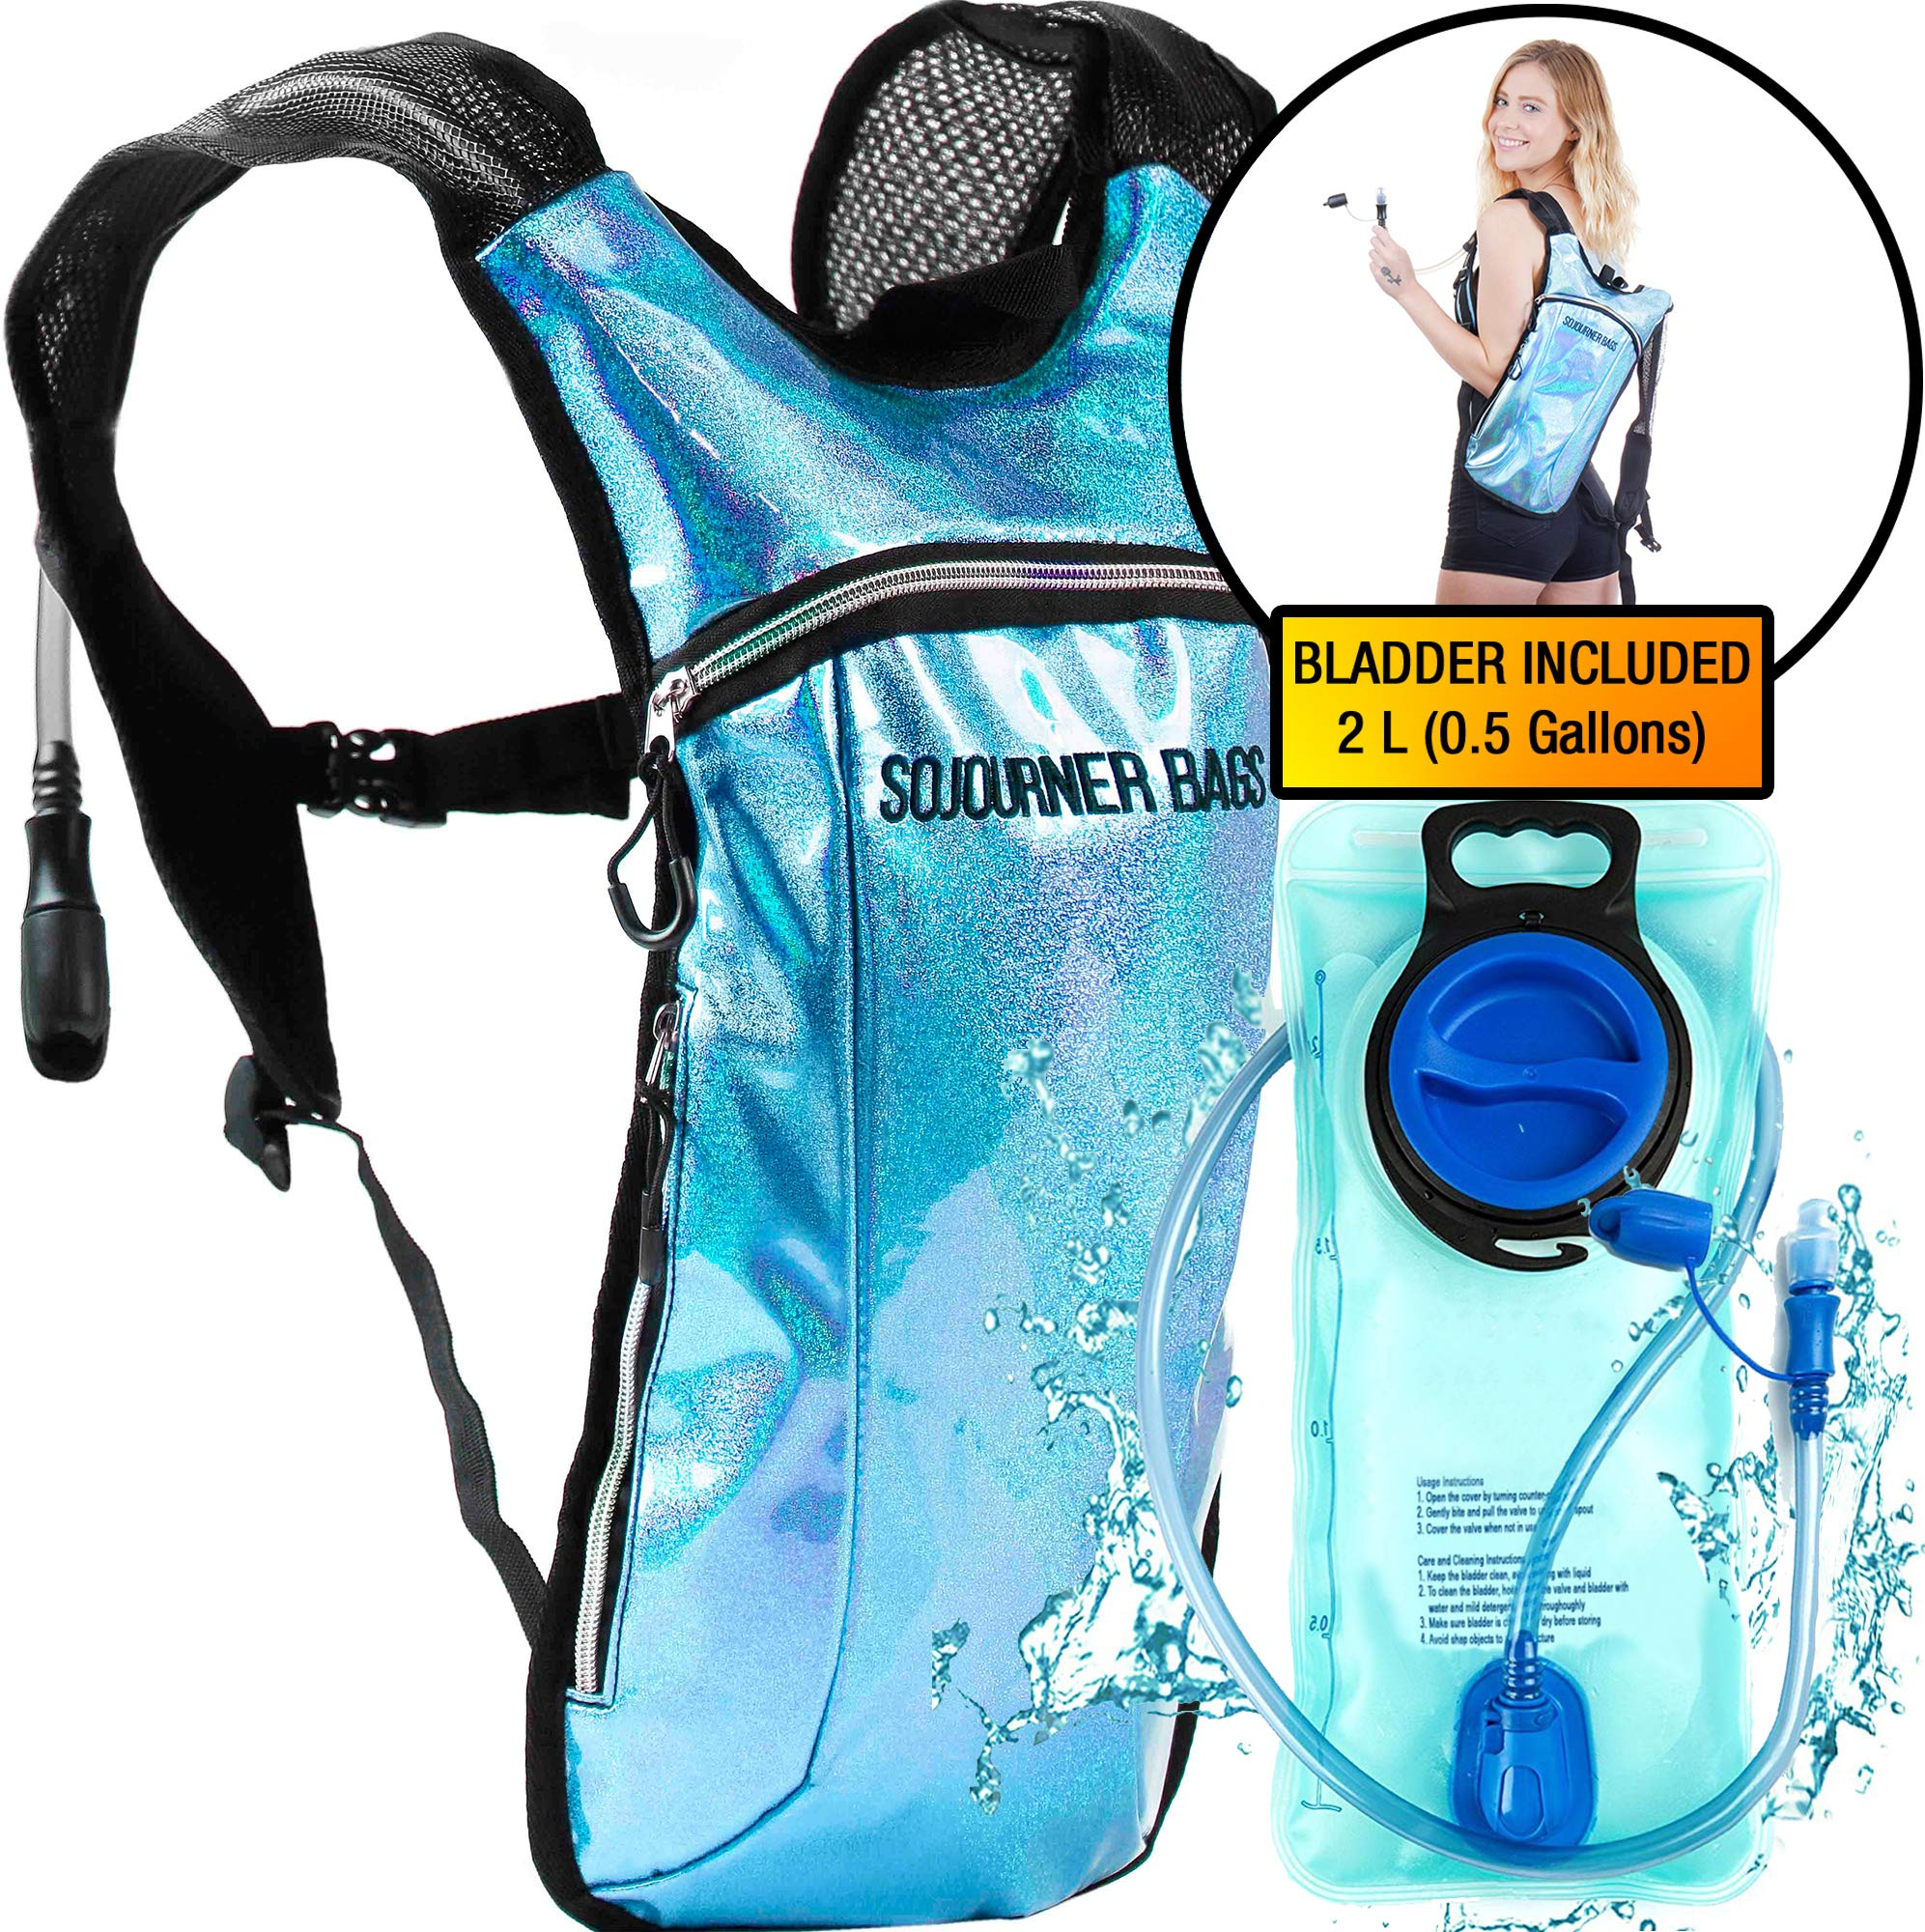 Sojourner Hydration Pack Backpack - 2L Water Bladder Included for Festivals, Raves, Hiking, Biking, Climbing, Running and More (Glitter - Light Blue) by SoJourner Bags